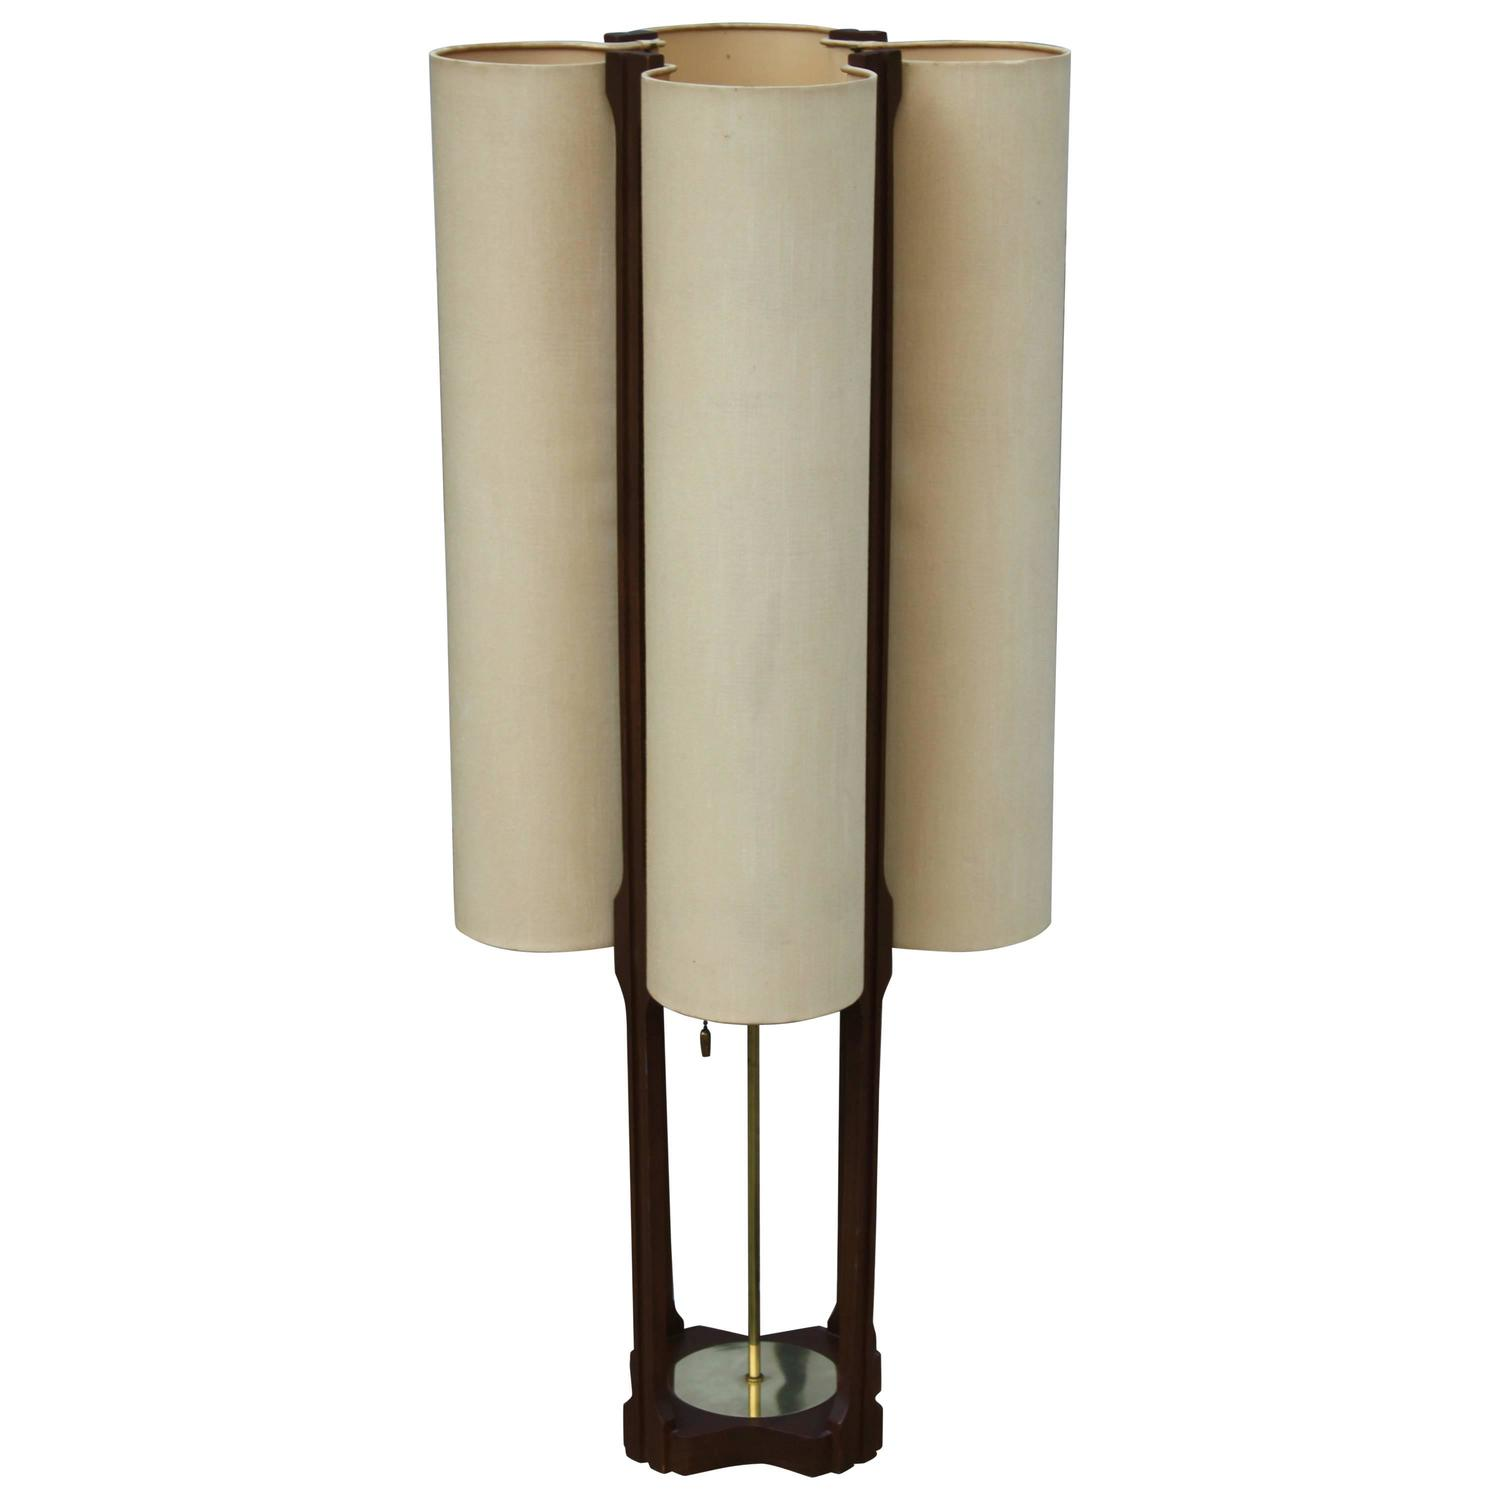 adrian pearsall style mid century modern large table lamp at 1stdibs. Black Bedroom Furniture Sets. Home Design Ideas